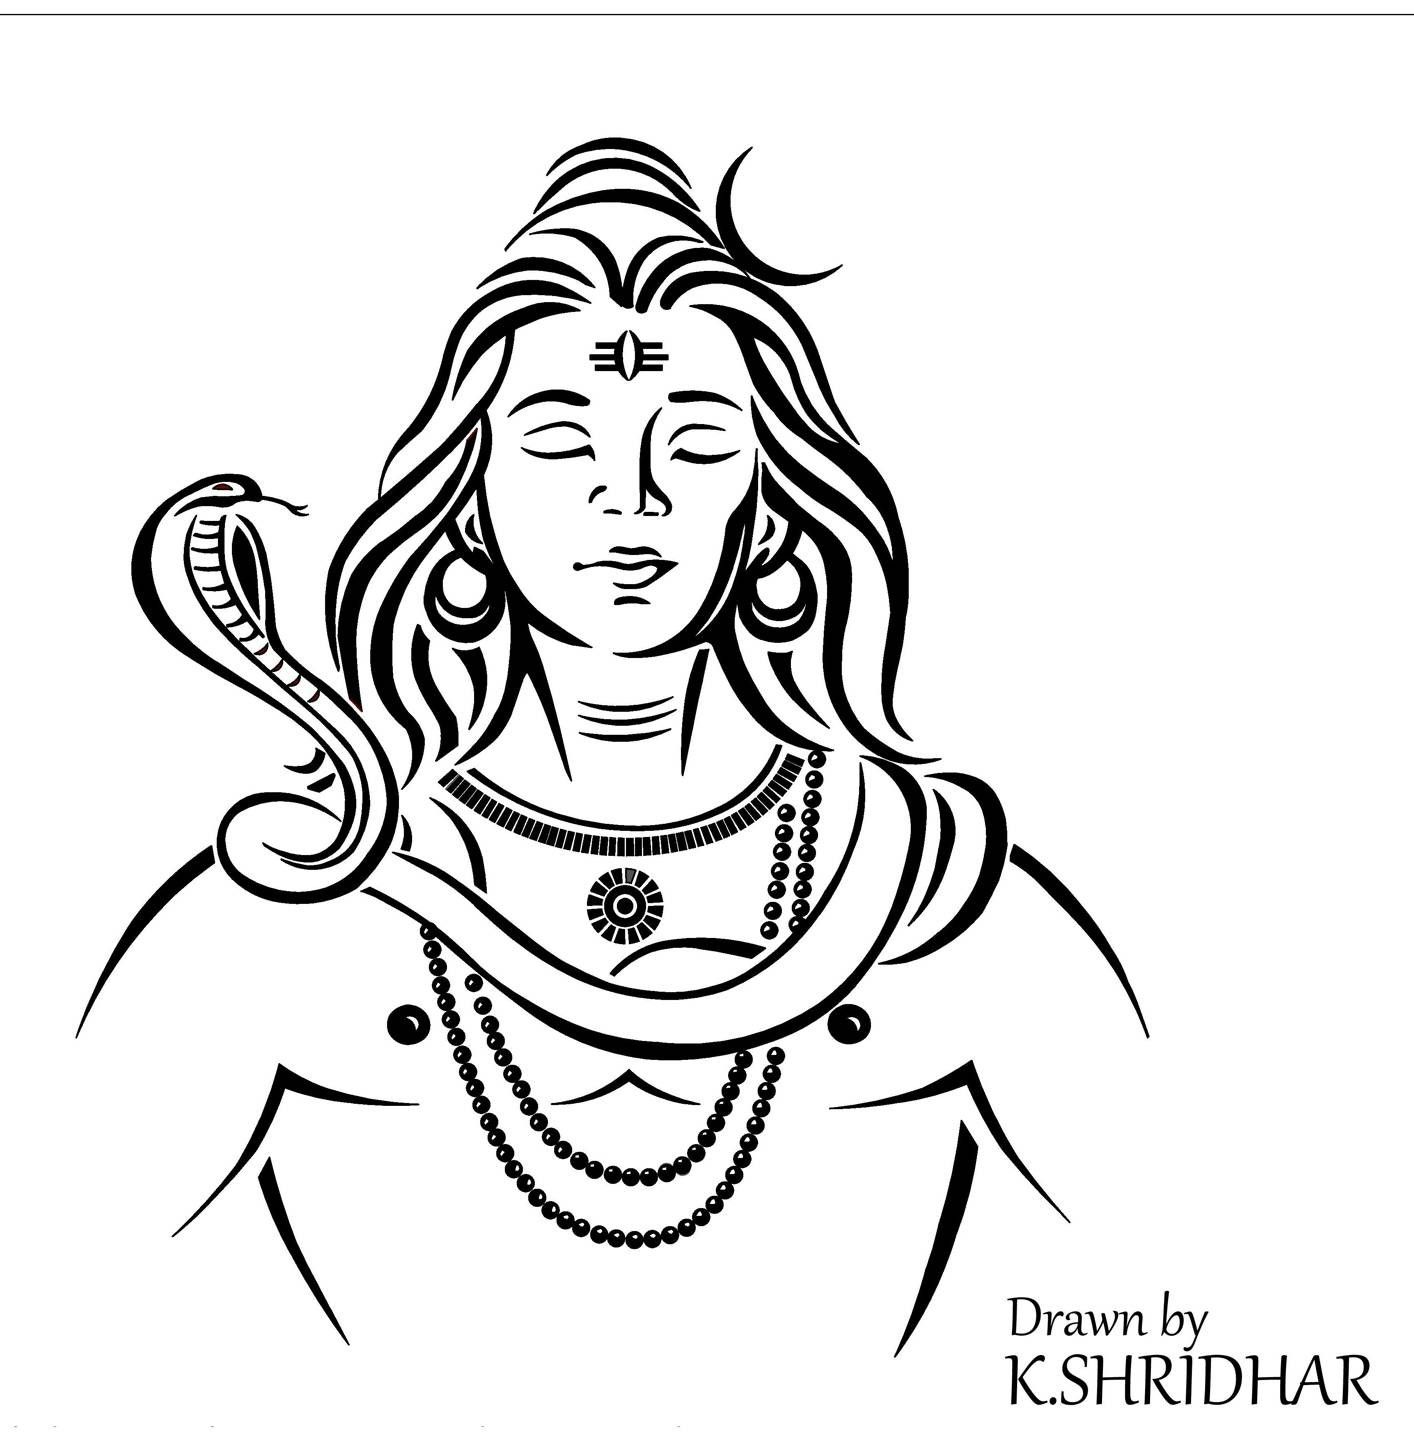 easy drawing of lord shiva shiva drawing free download on clipartmag shiva drawing lord easy of